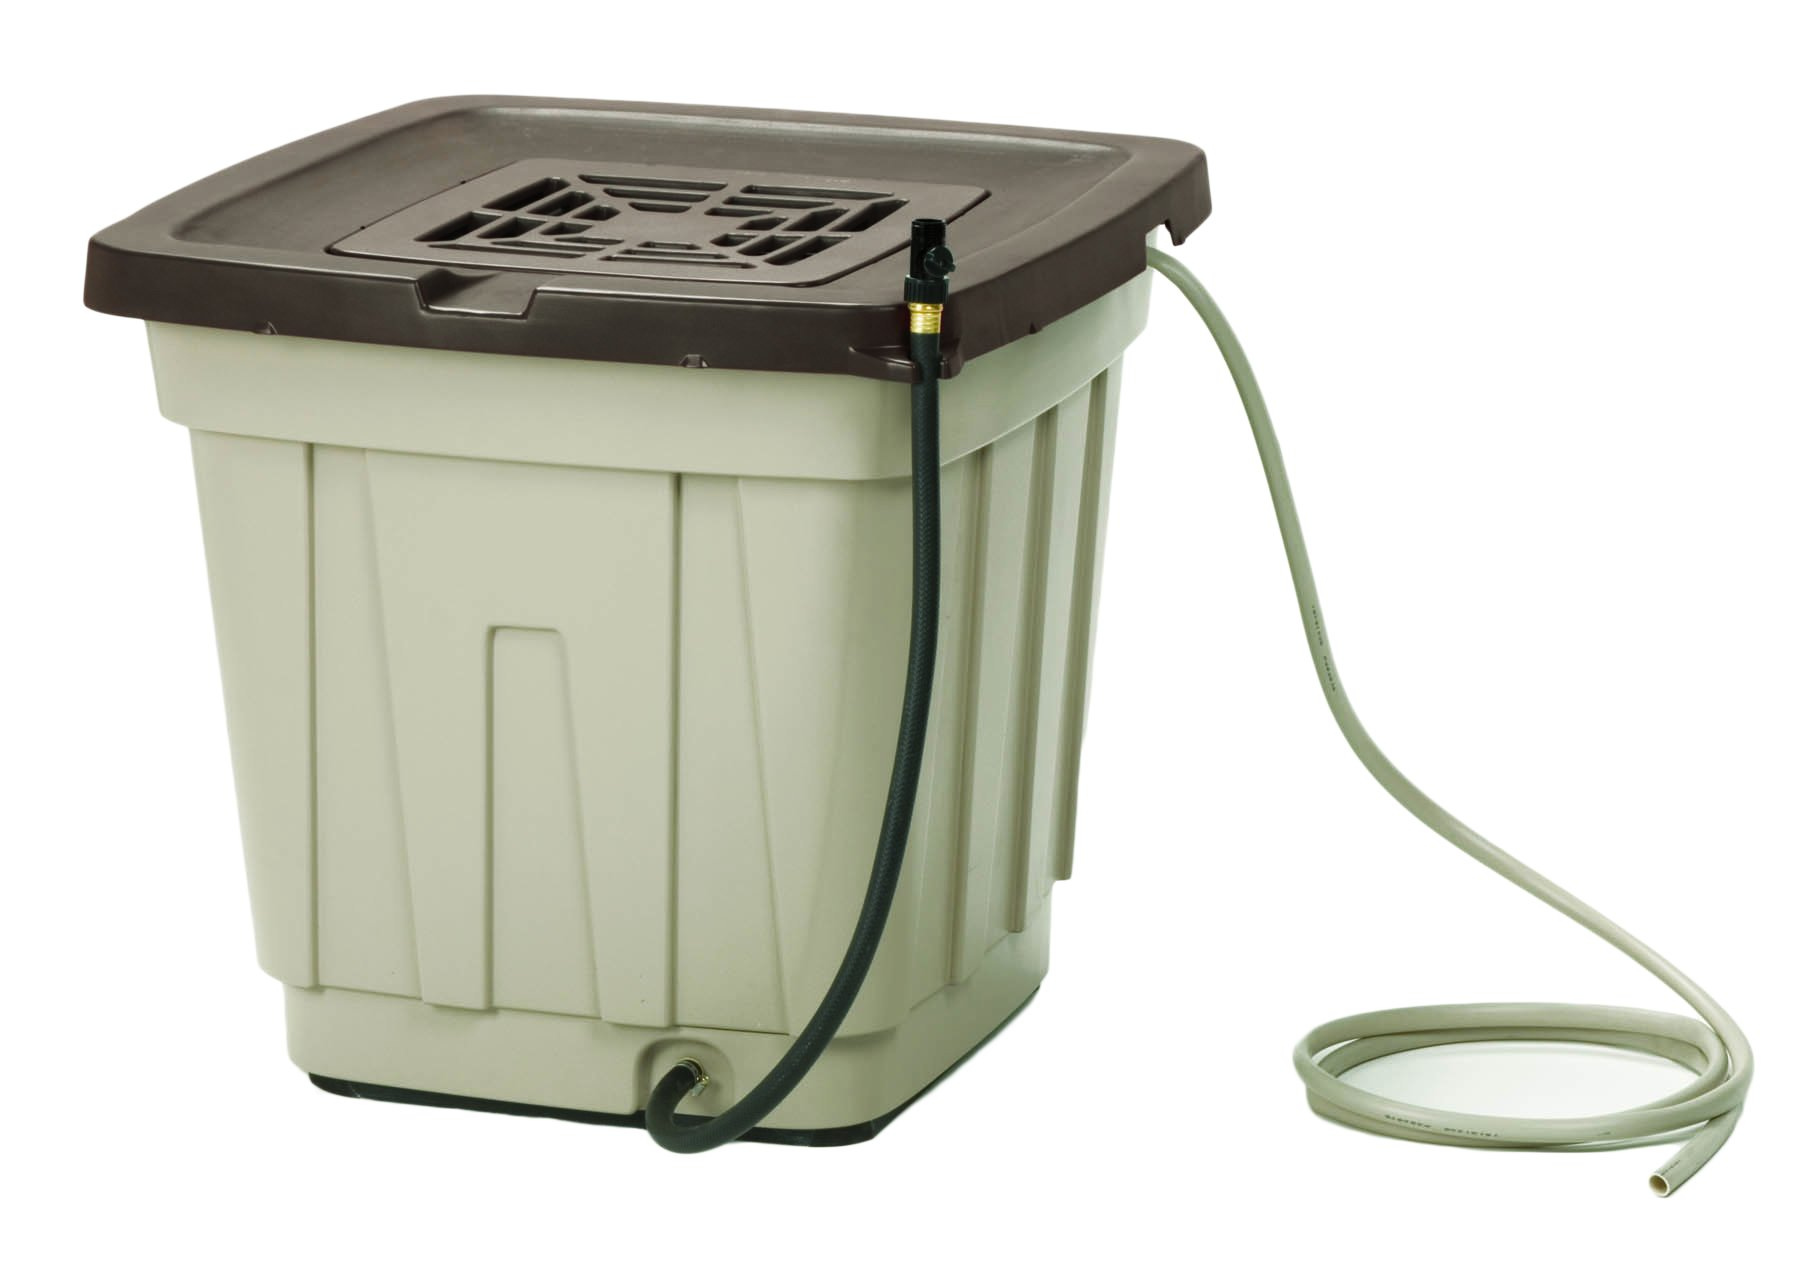 Suncast 50 Gallon Rain Barrel with Hose - Durable Resin Rain Barrel - Holds and Catches Rain Water - Taupe by Suncast